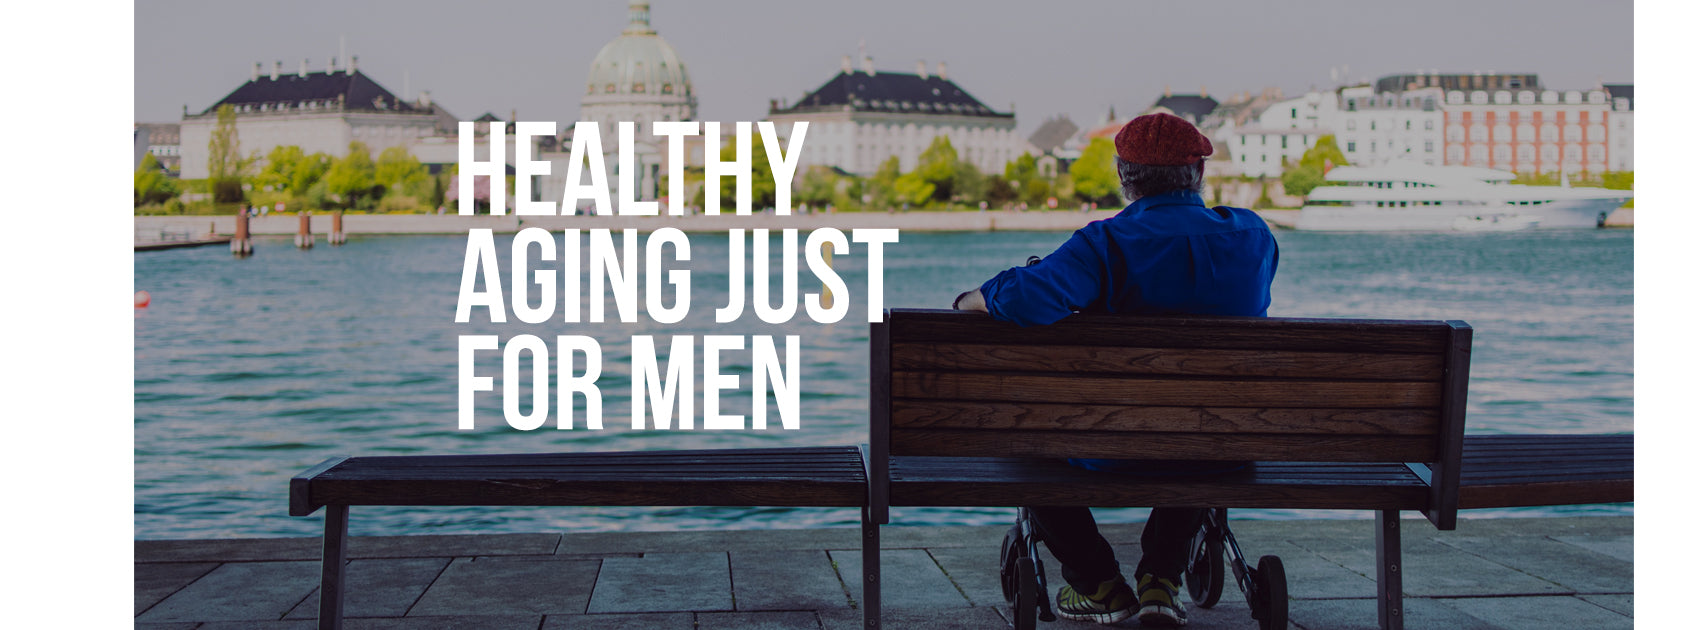 Healthy Aging Just for Men